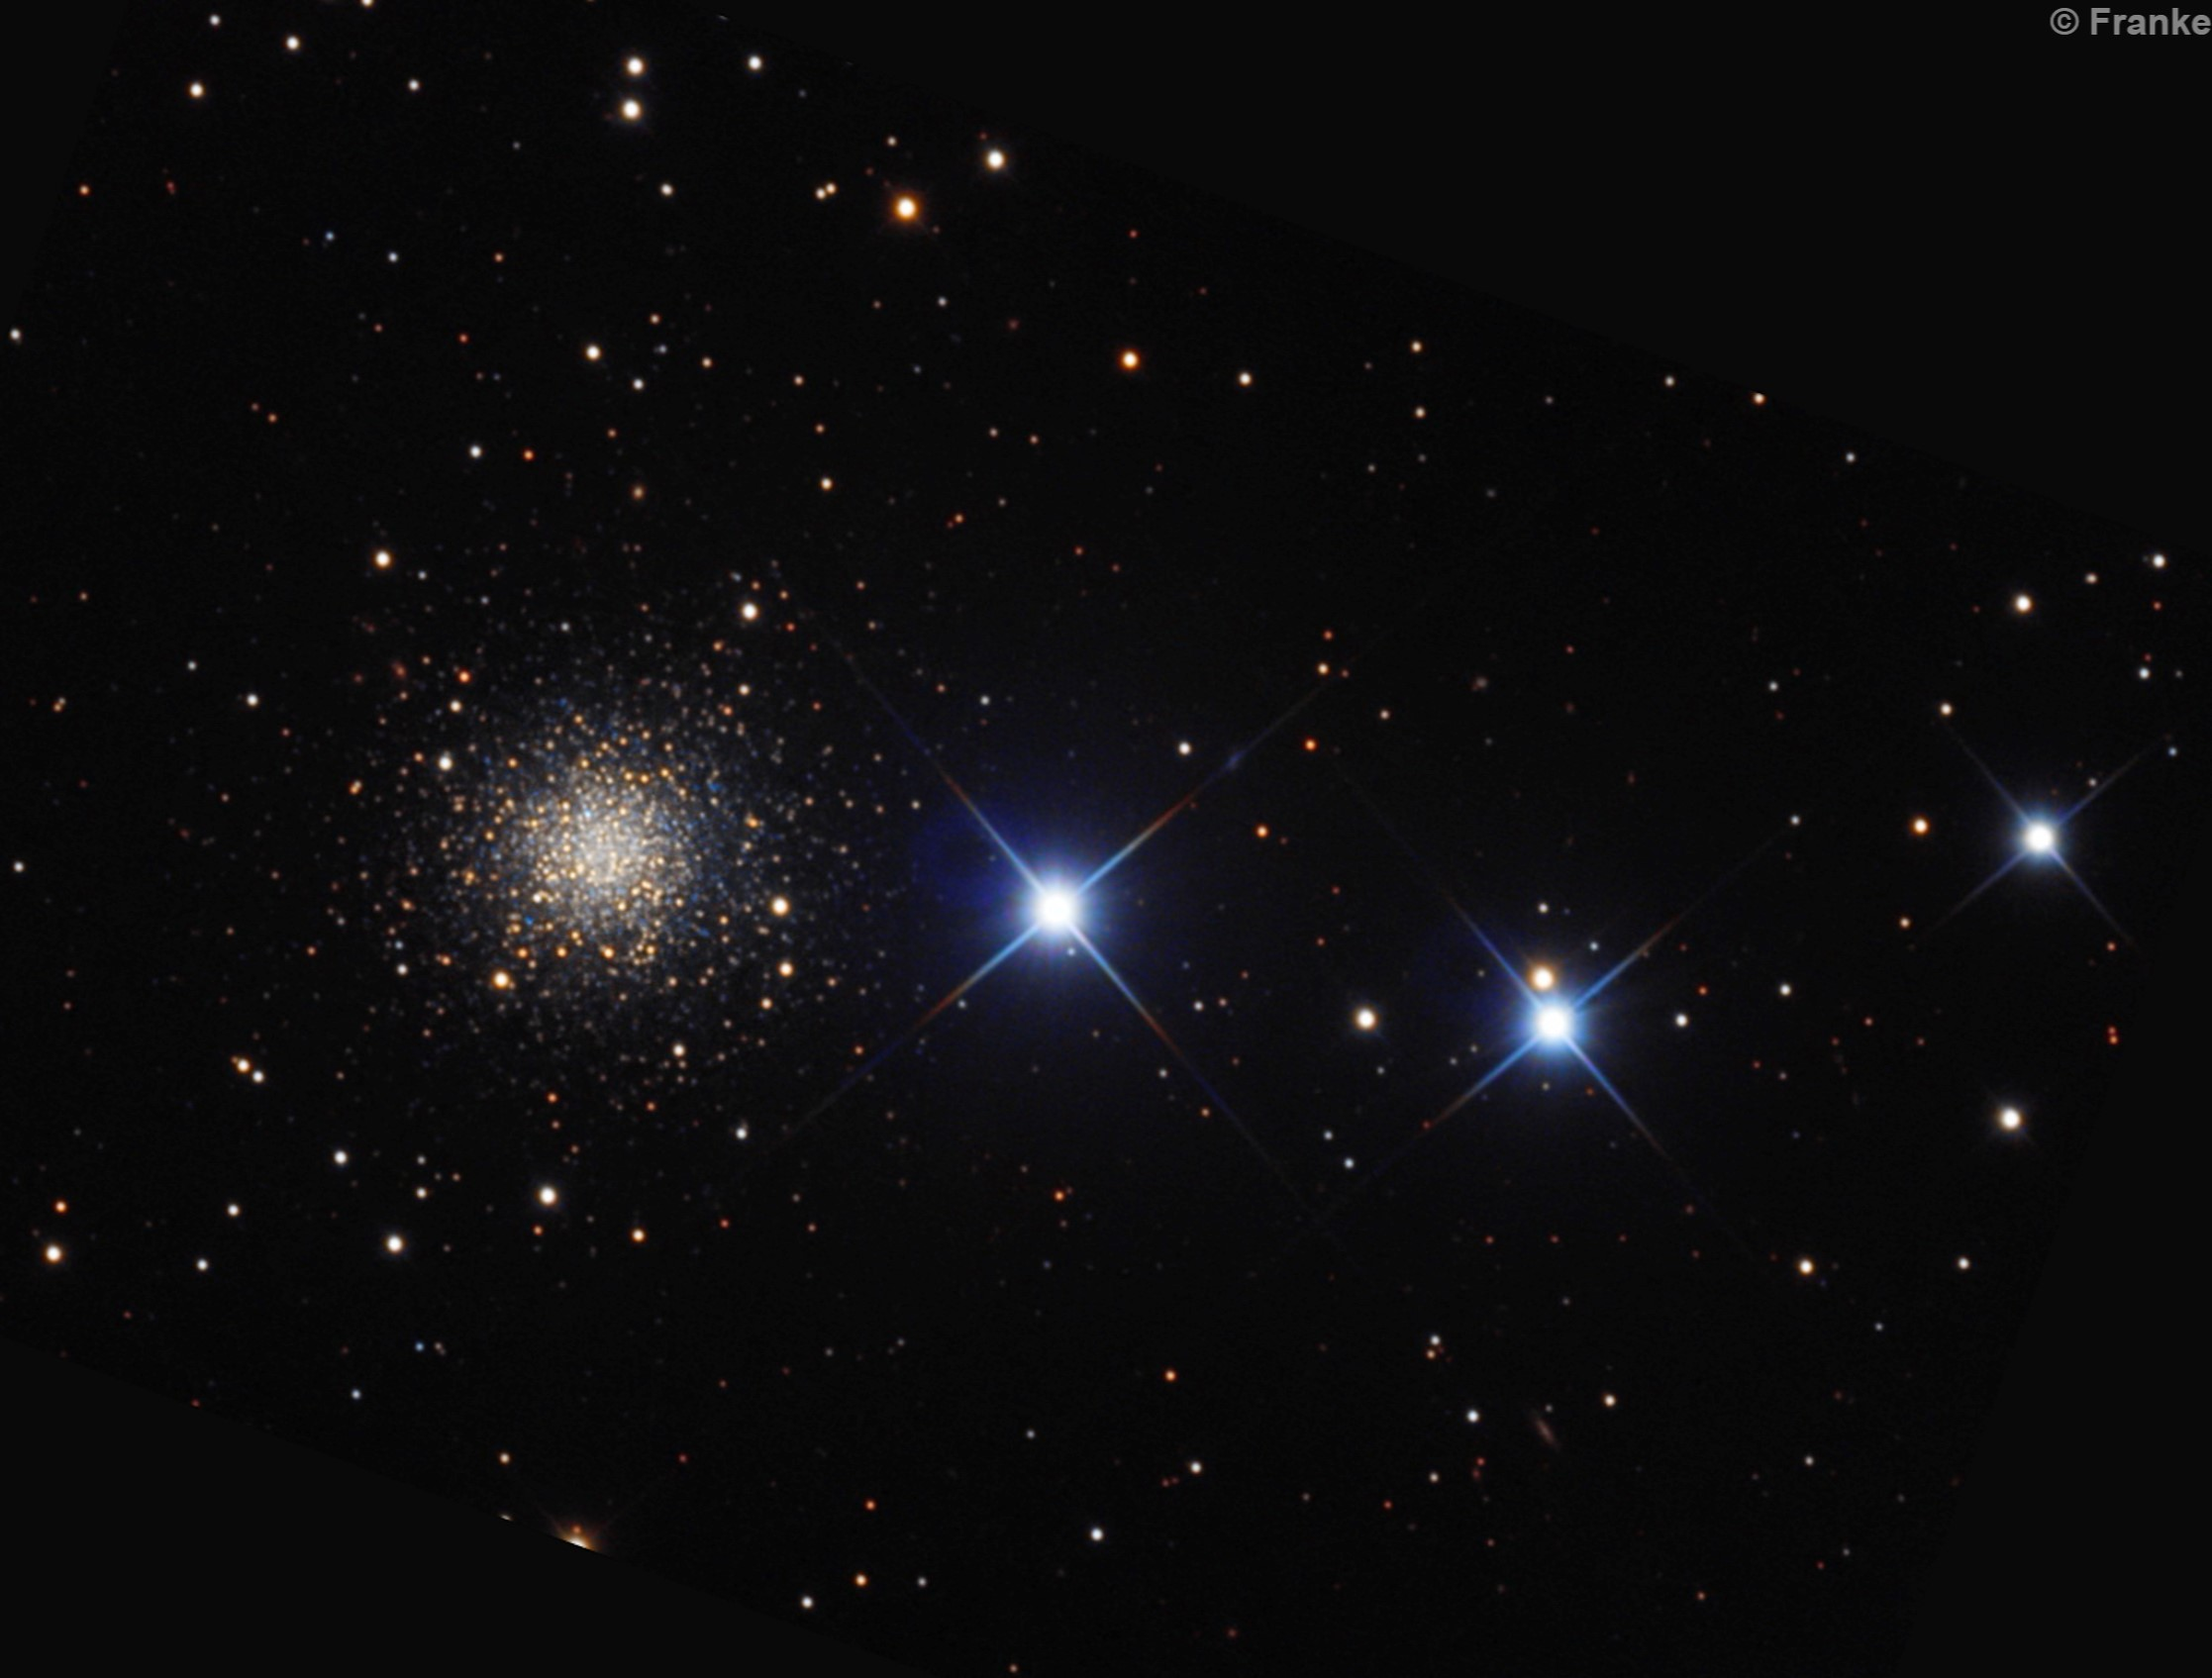 NGC 2419, the Intergalactic Wanderer